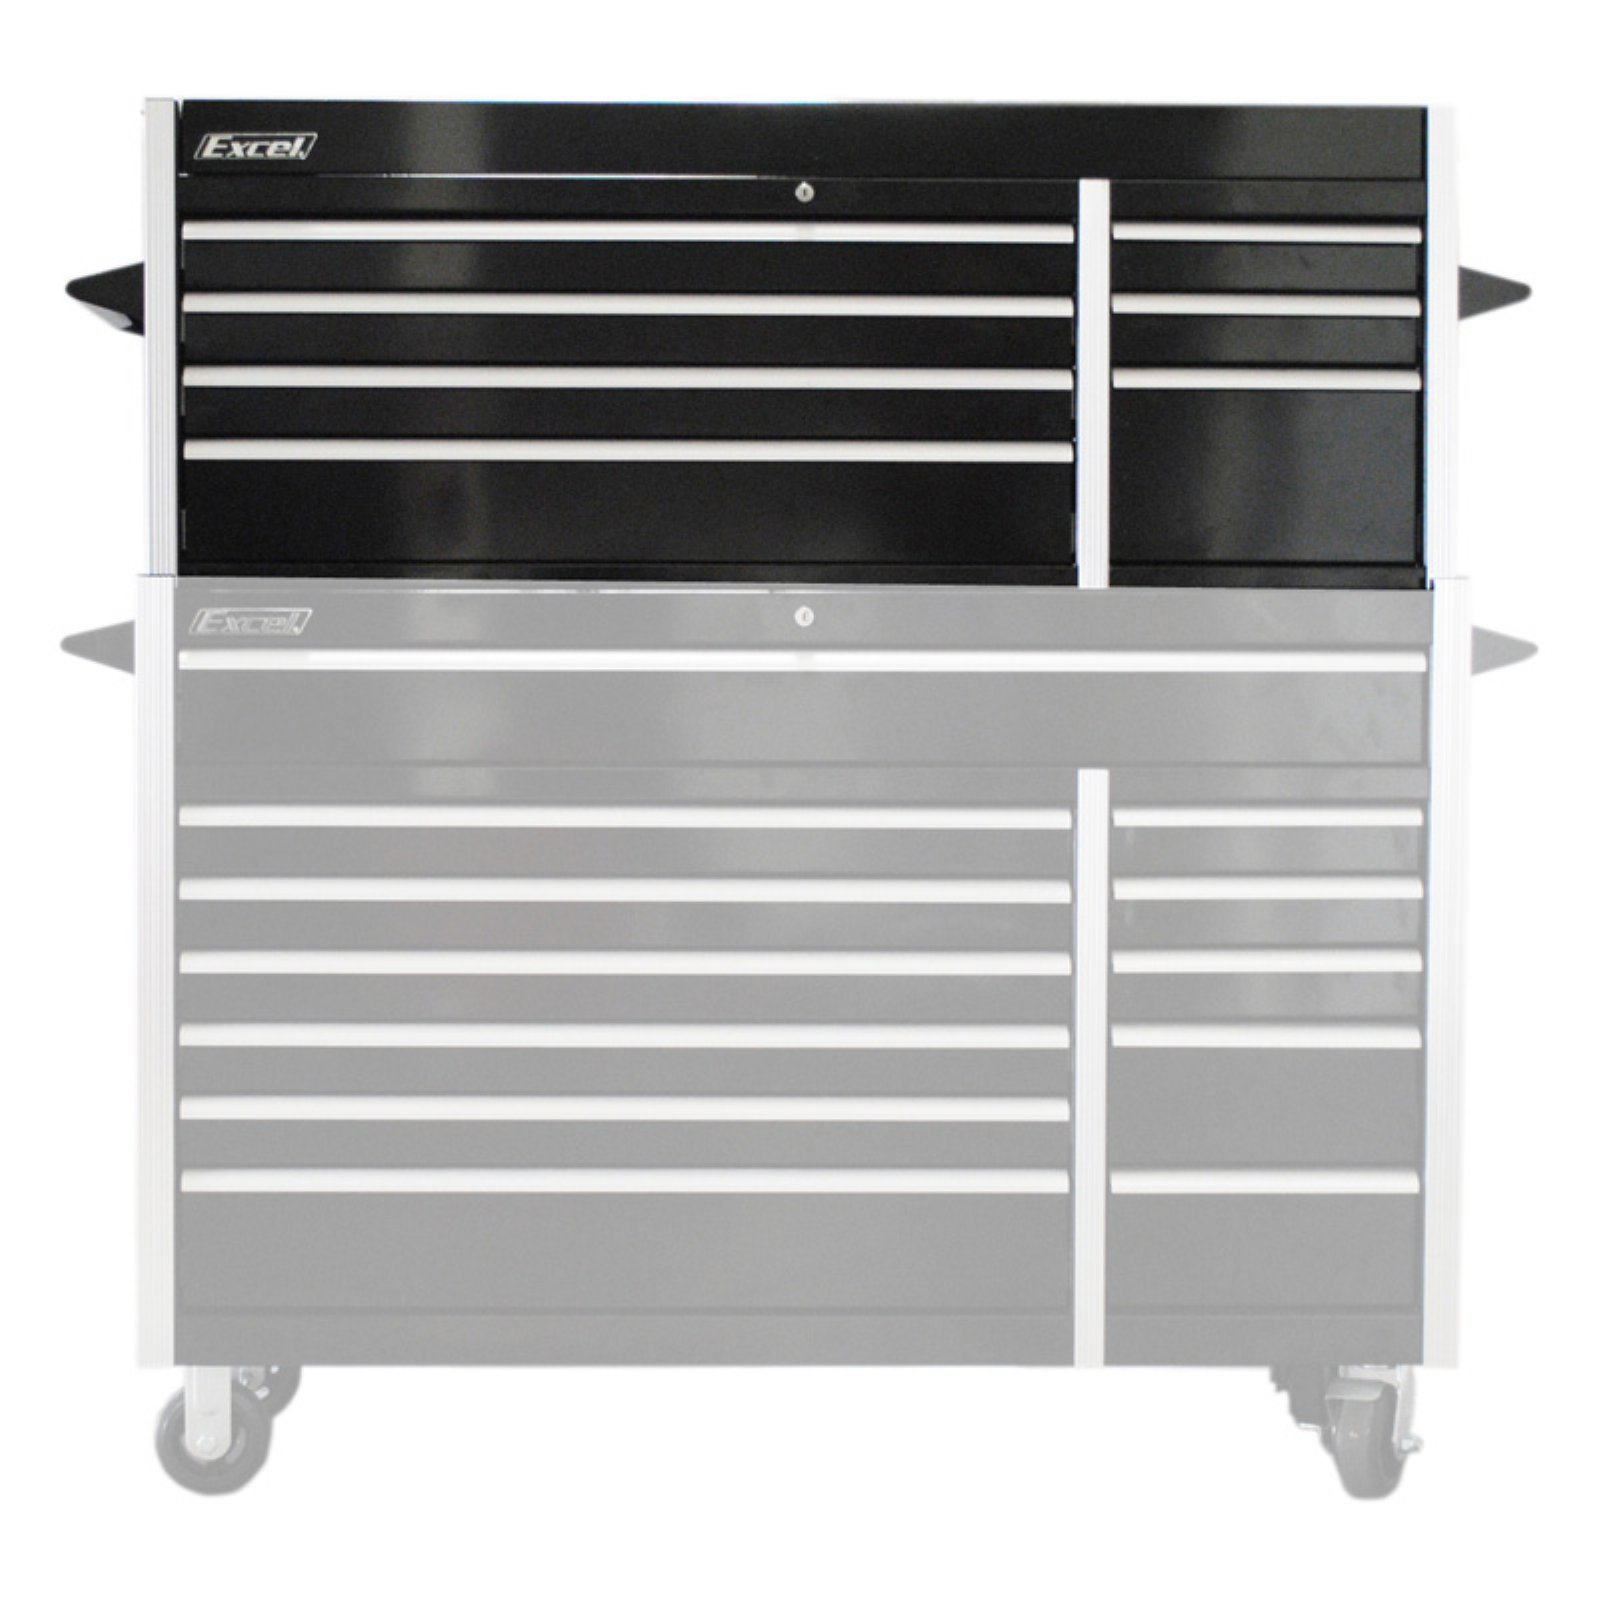 """Excel 56"""" Steel Tool Top Chest with 7 Ball Bearing Drawers - Black"""